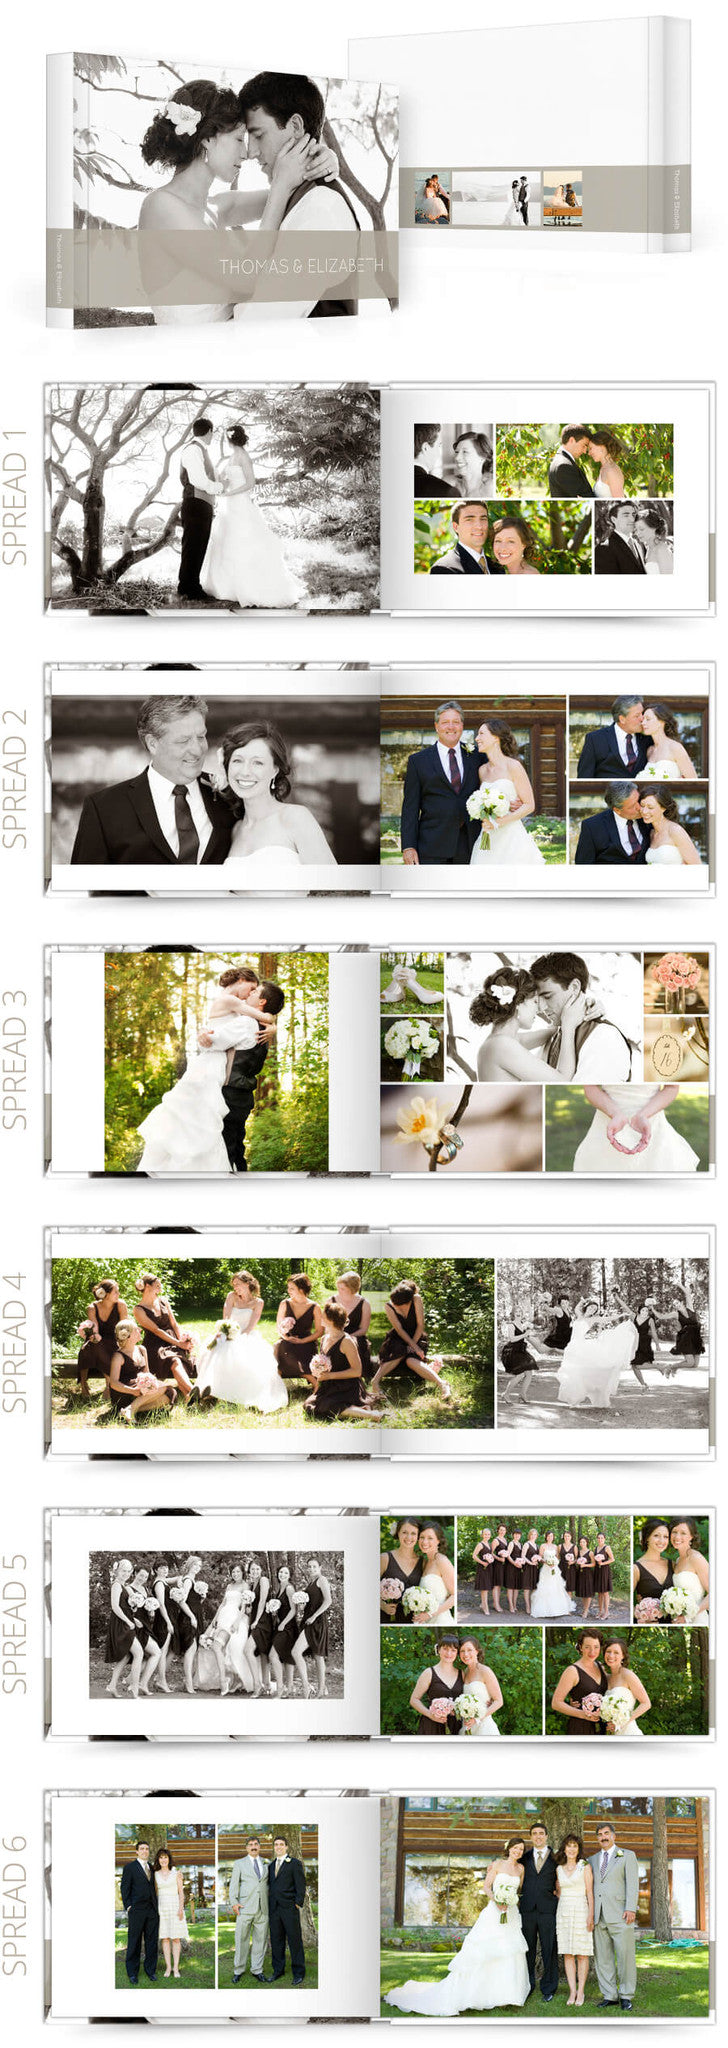 Classic 2 Wedding 12x8 Album Photoshop Templates